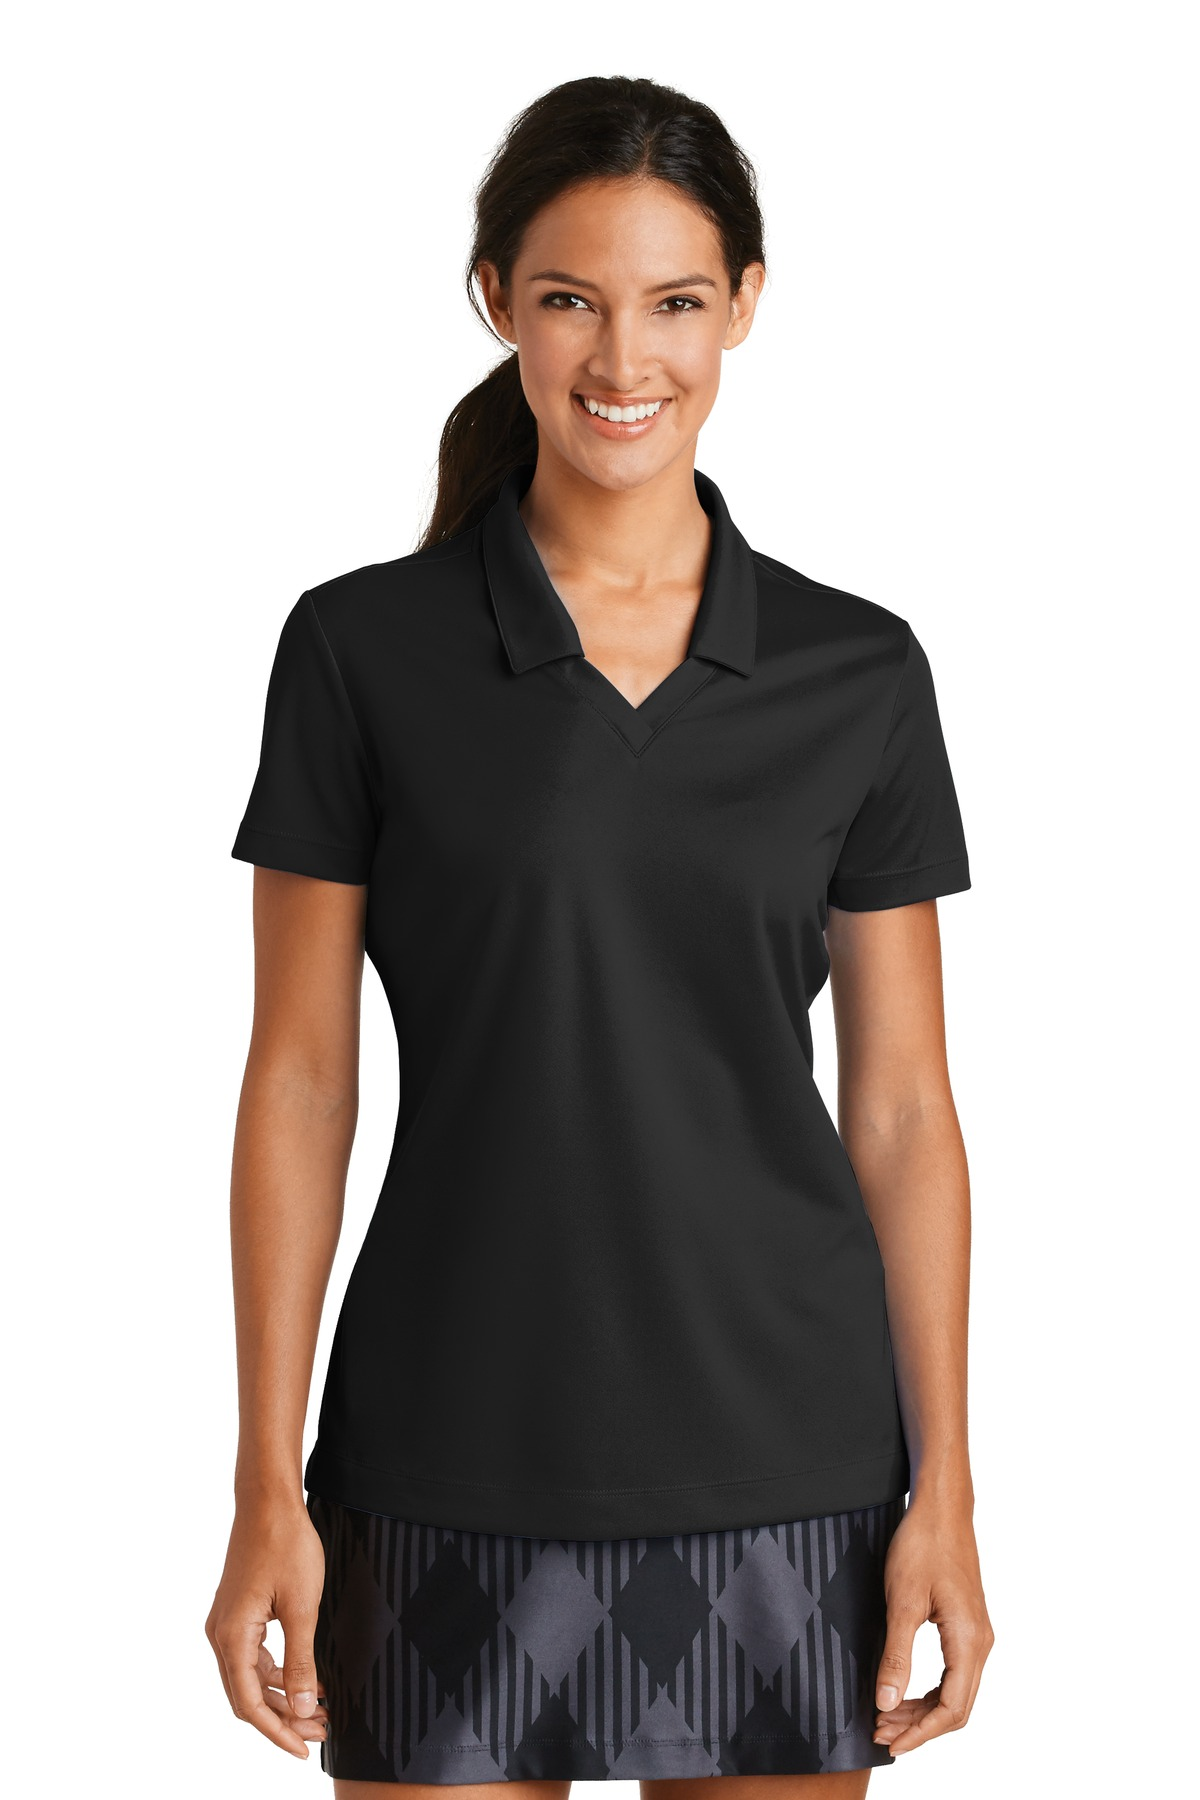 Nike Ladies Dri-FIT Micro Pique Polo. 354067 - Black